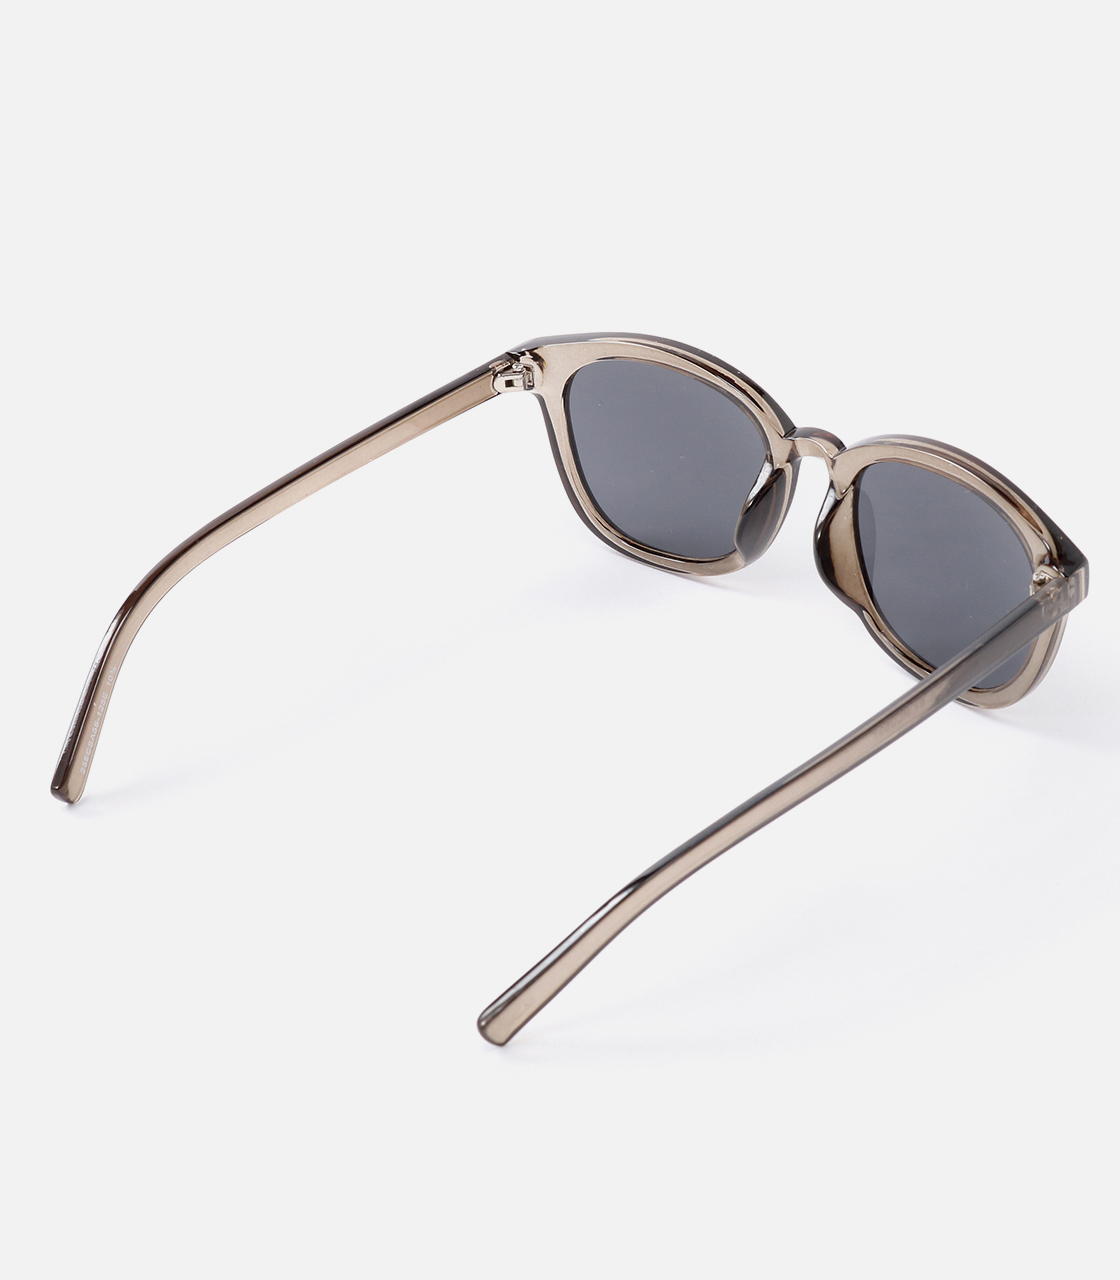 【AZUL BY MOUSSY】BIG FLAME SUNGLASSES 詳細画像 L/BLK 2